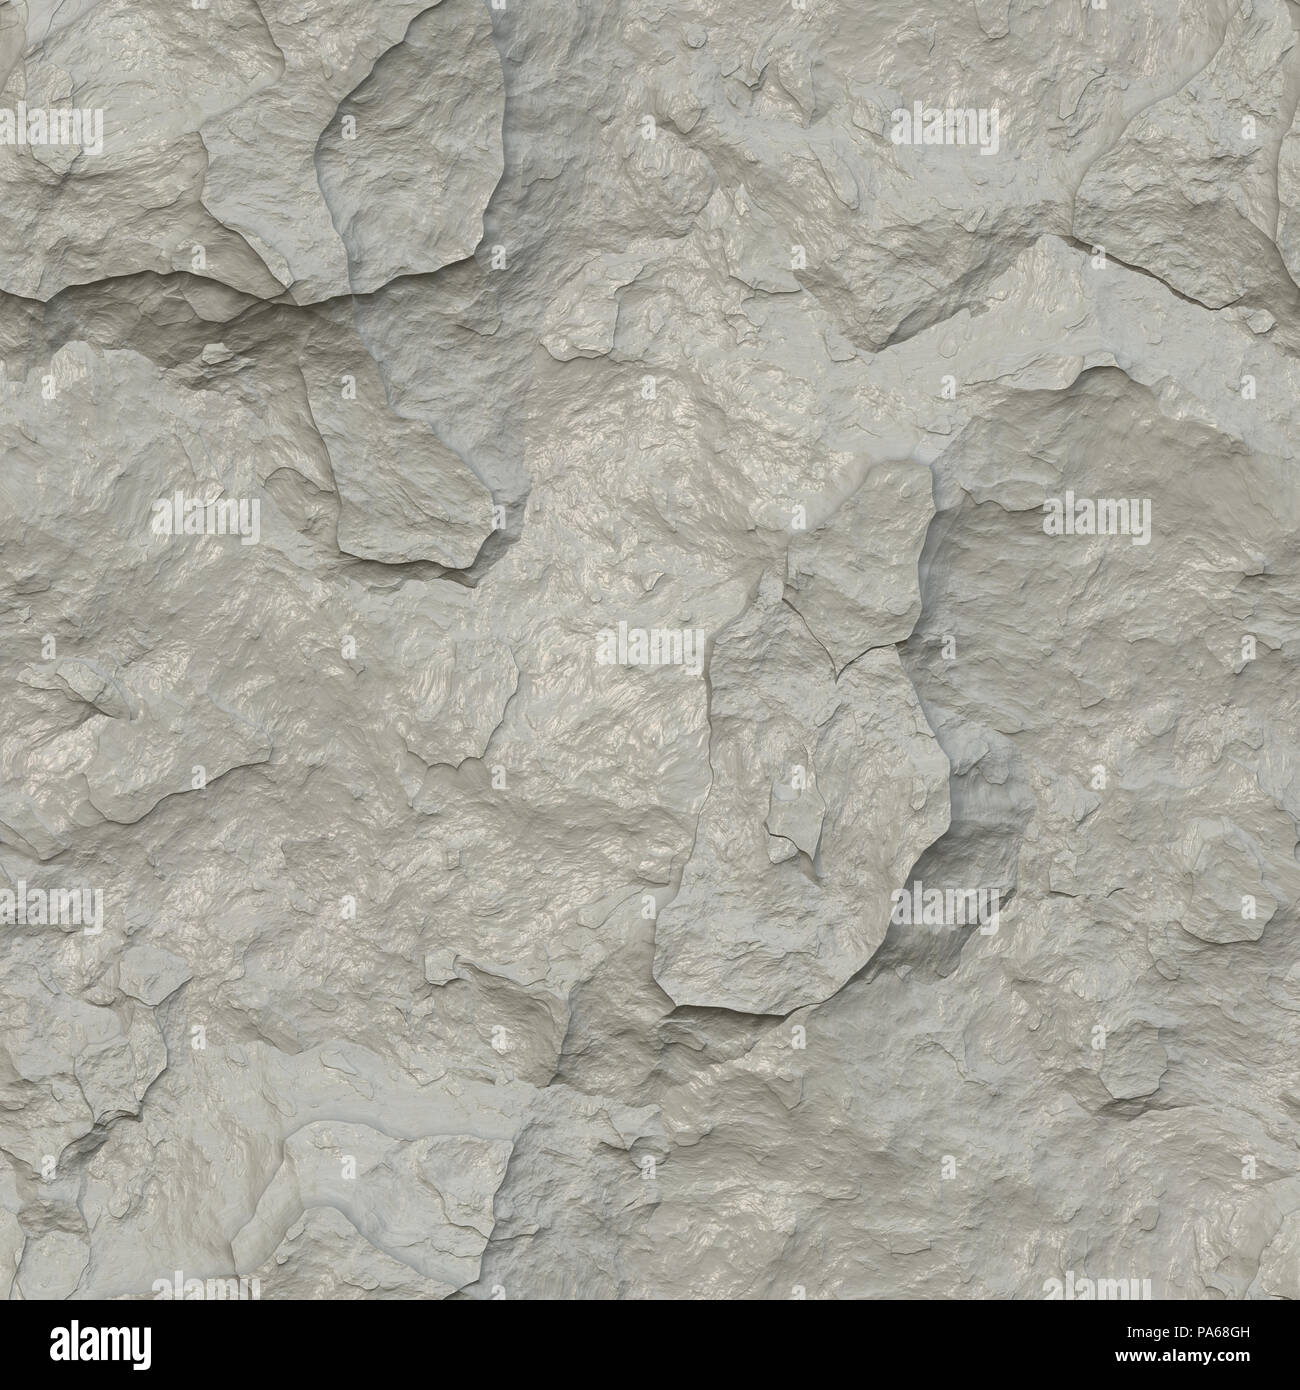 An illustration of a nice chalk stone texture seamless - Stock Image